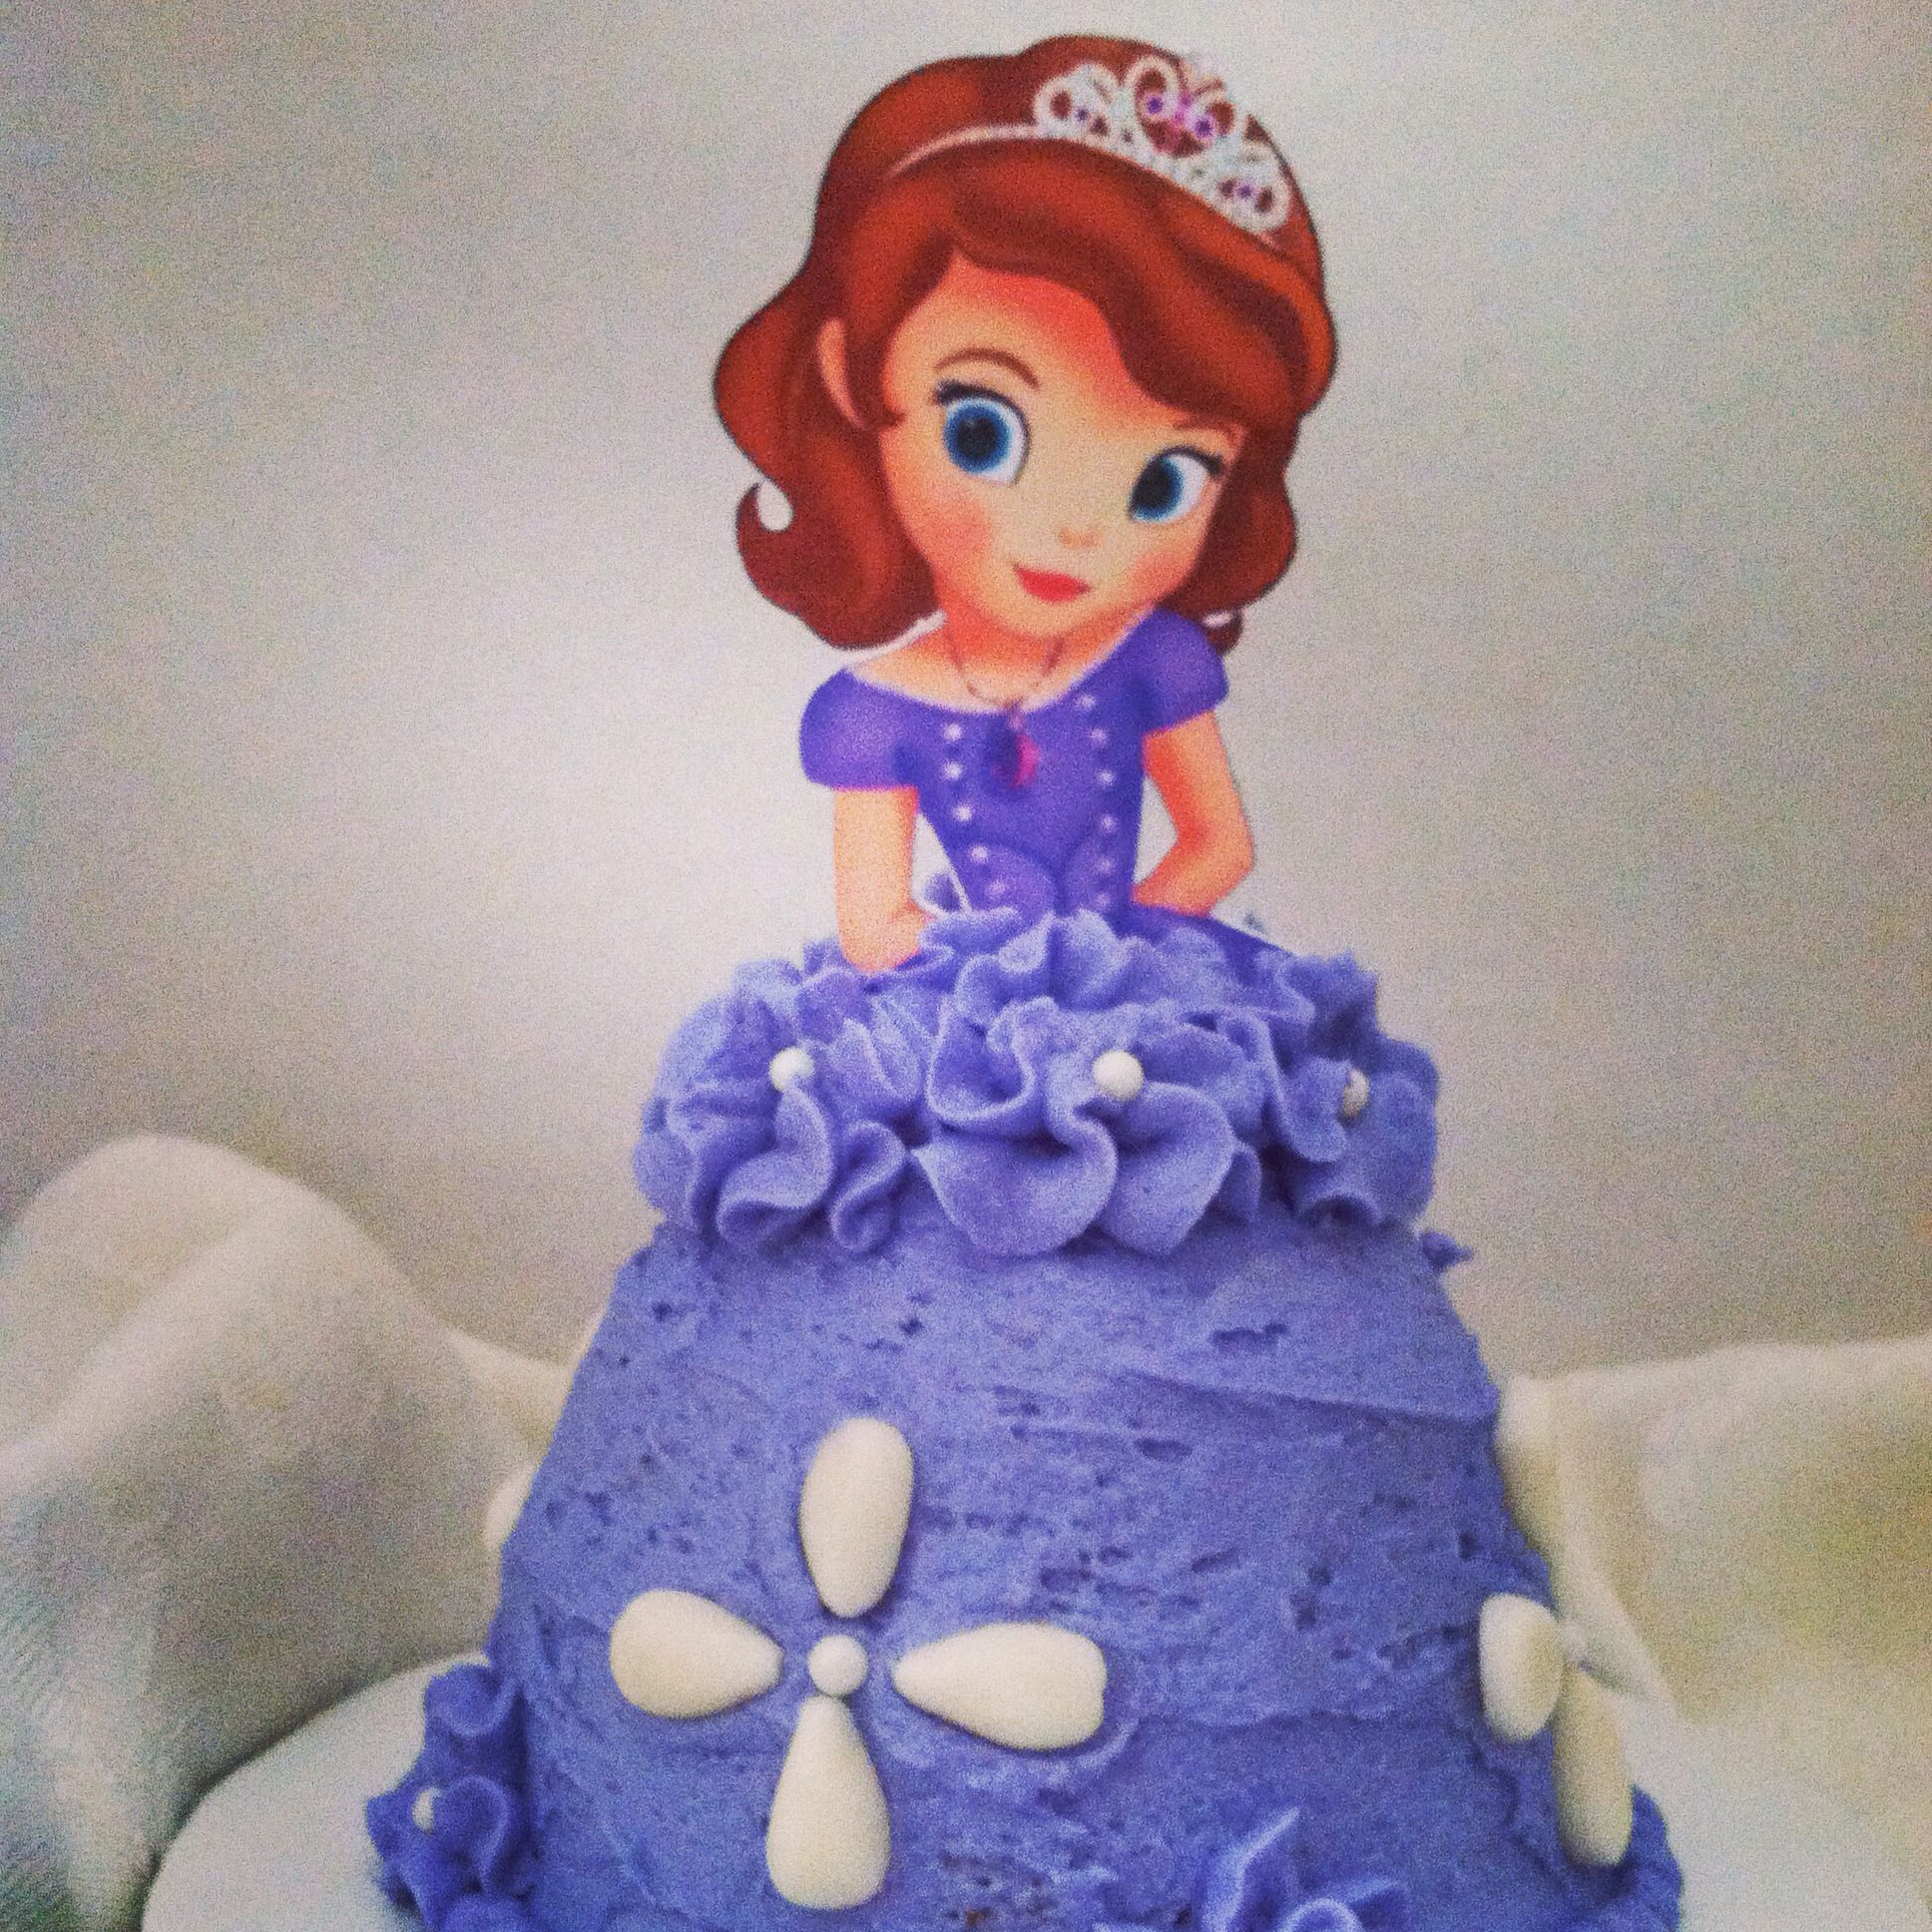 Sofia the First Doll Cake Princess Doll Cakes Pinterest